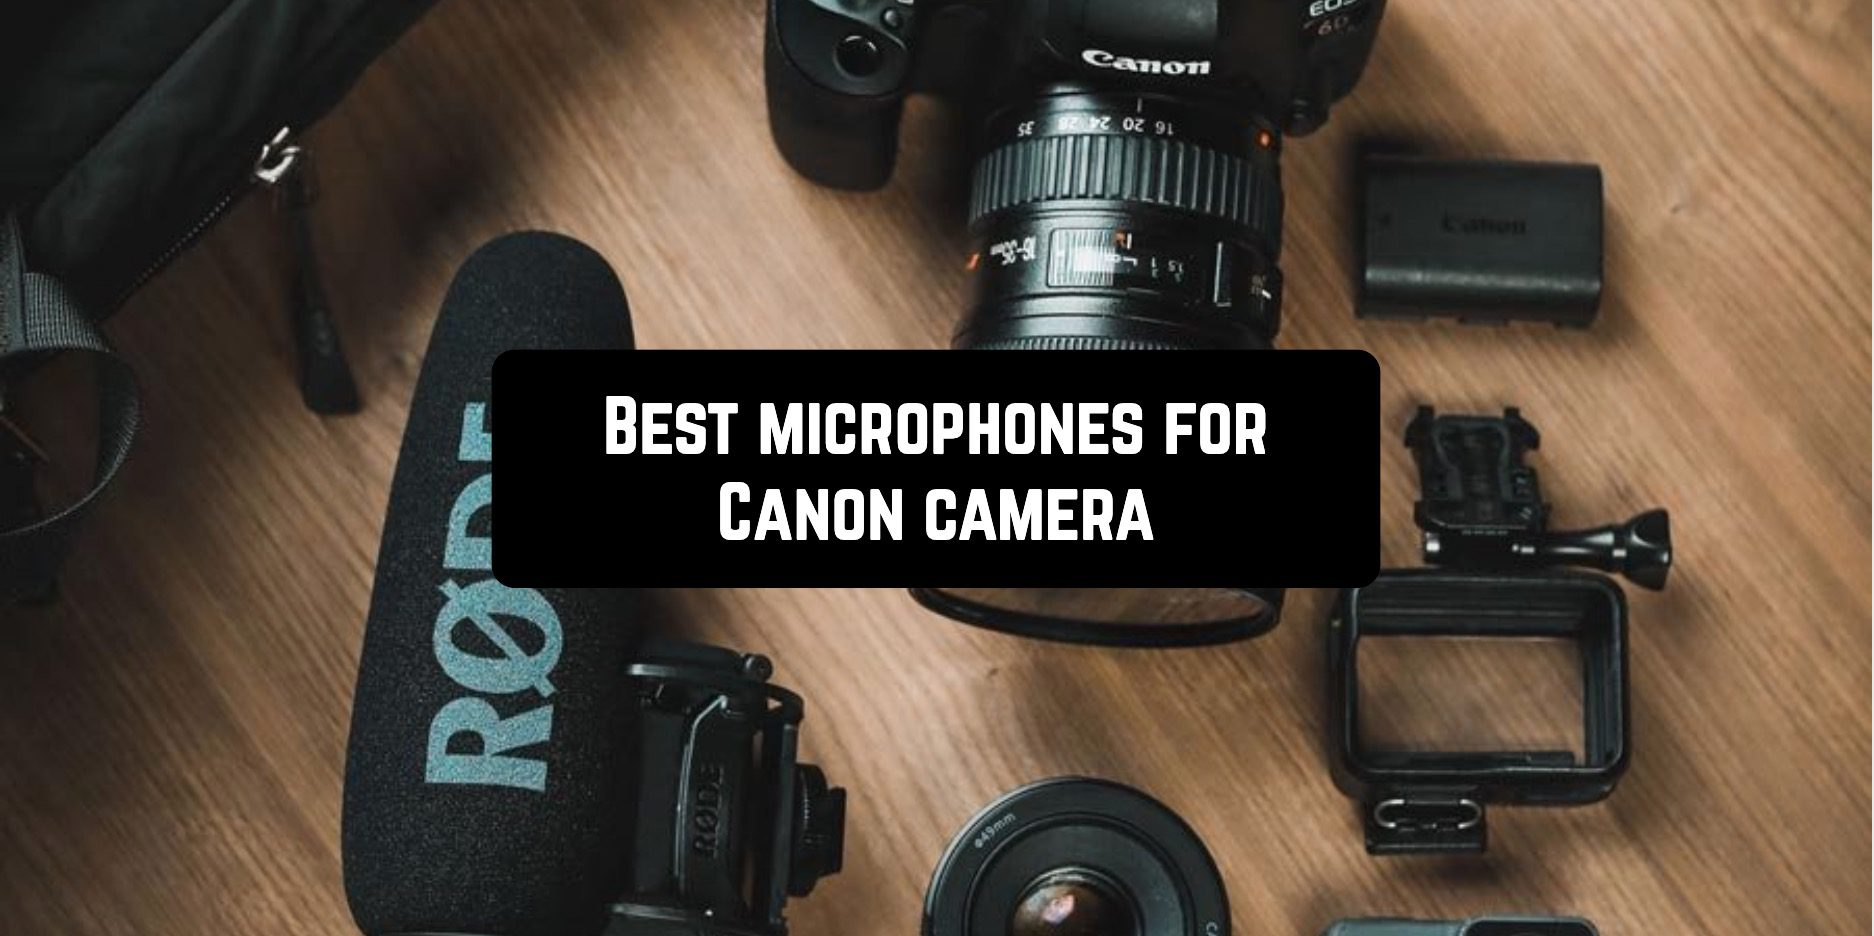 Best microphones for Canon camera